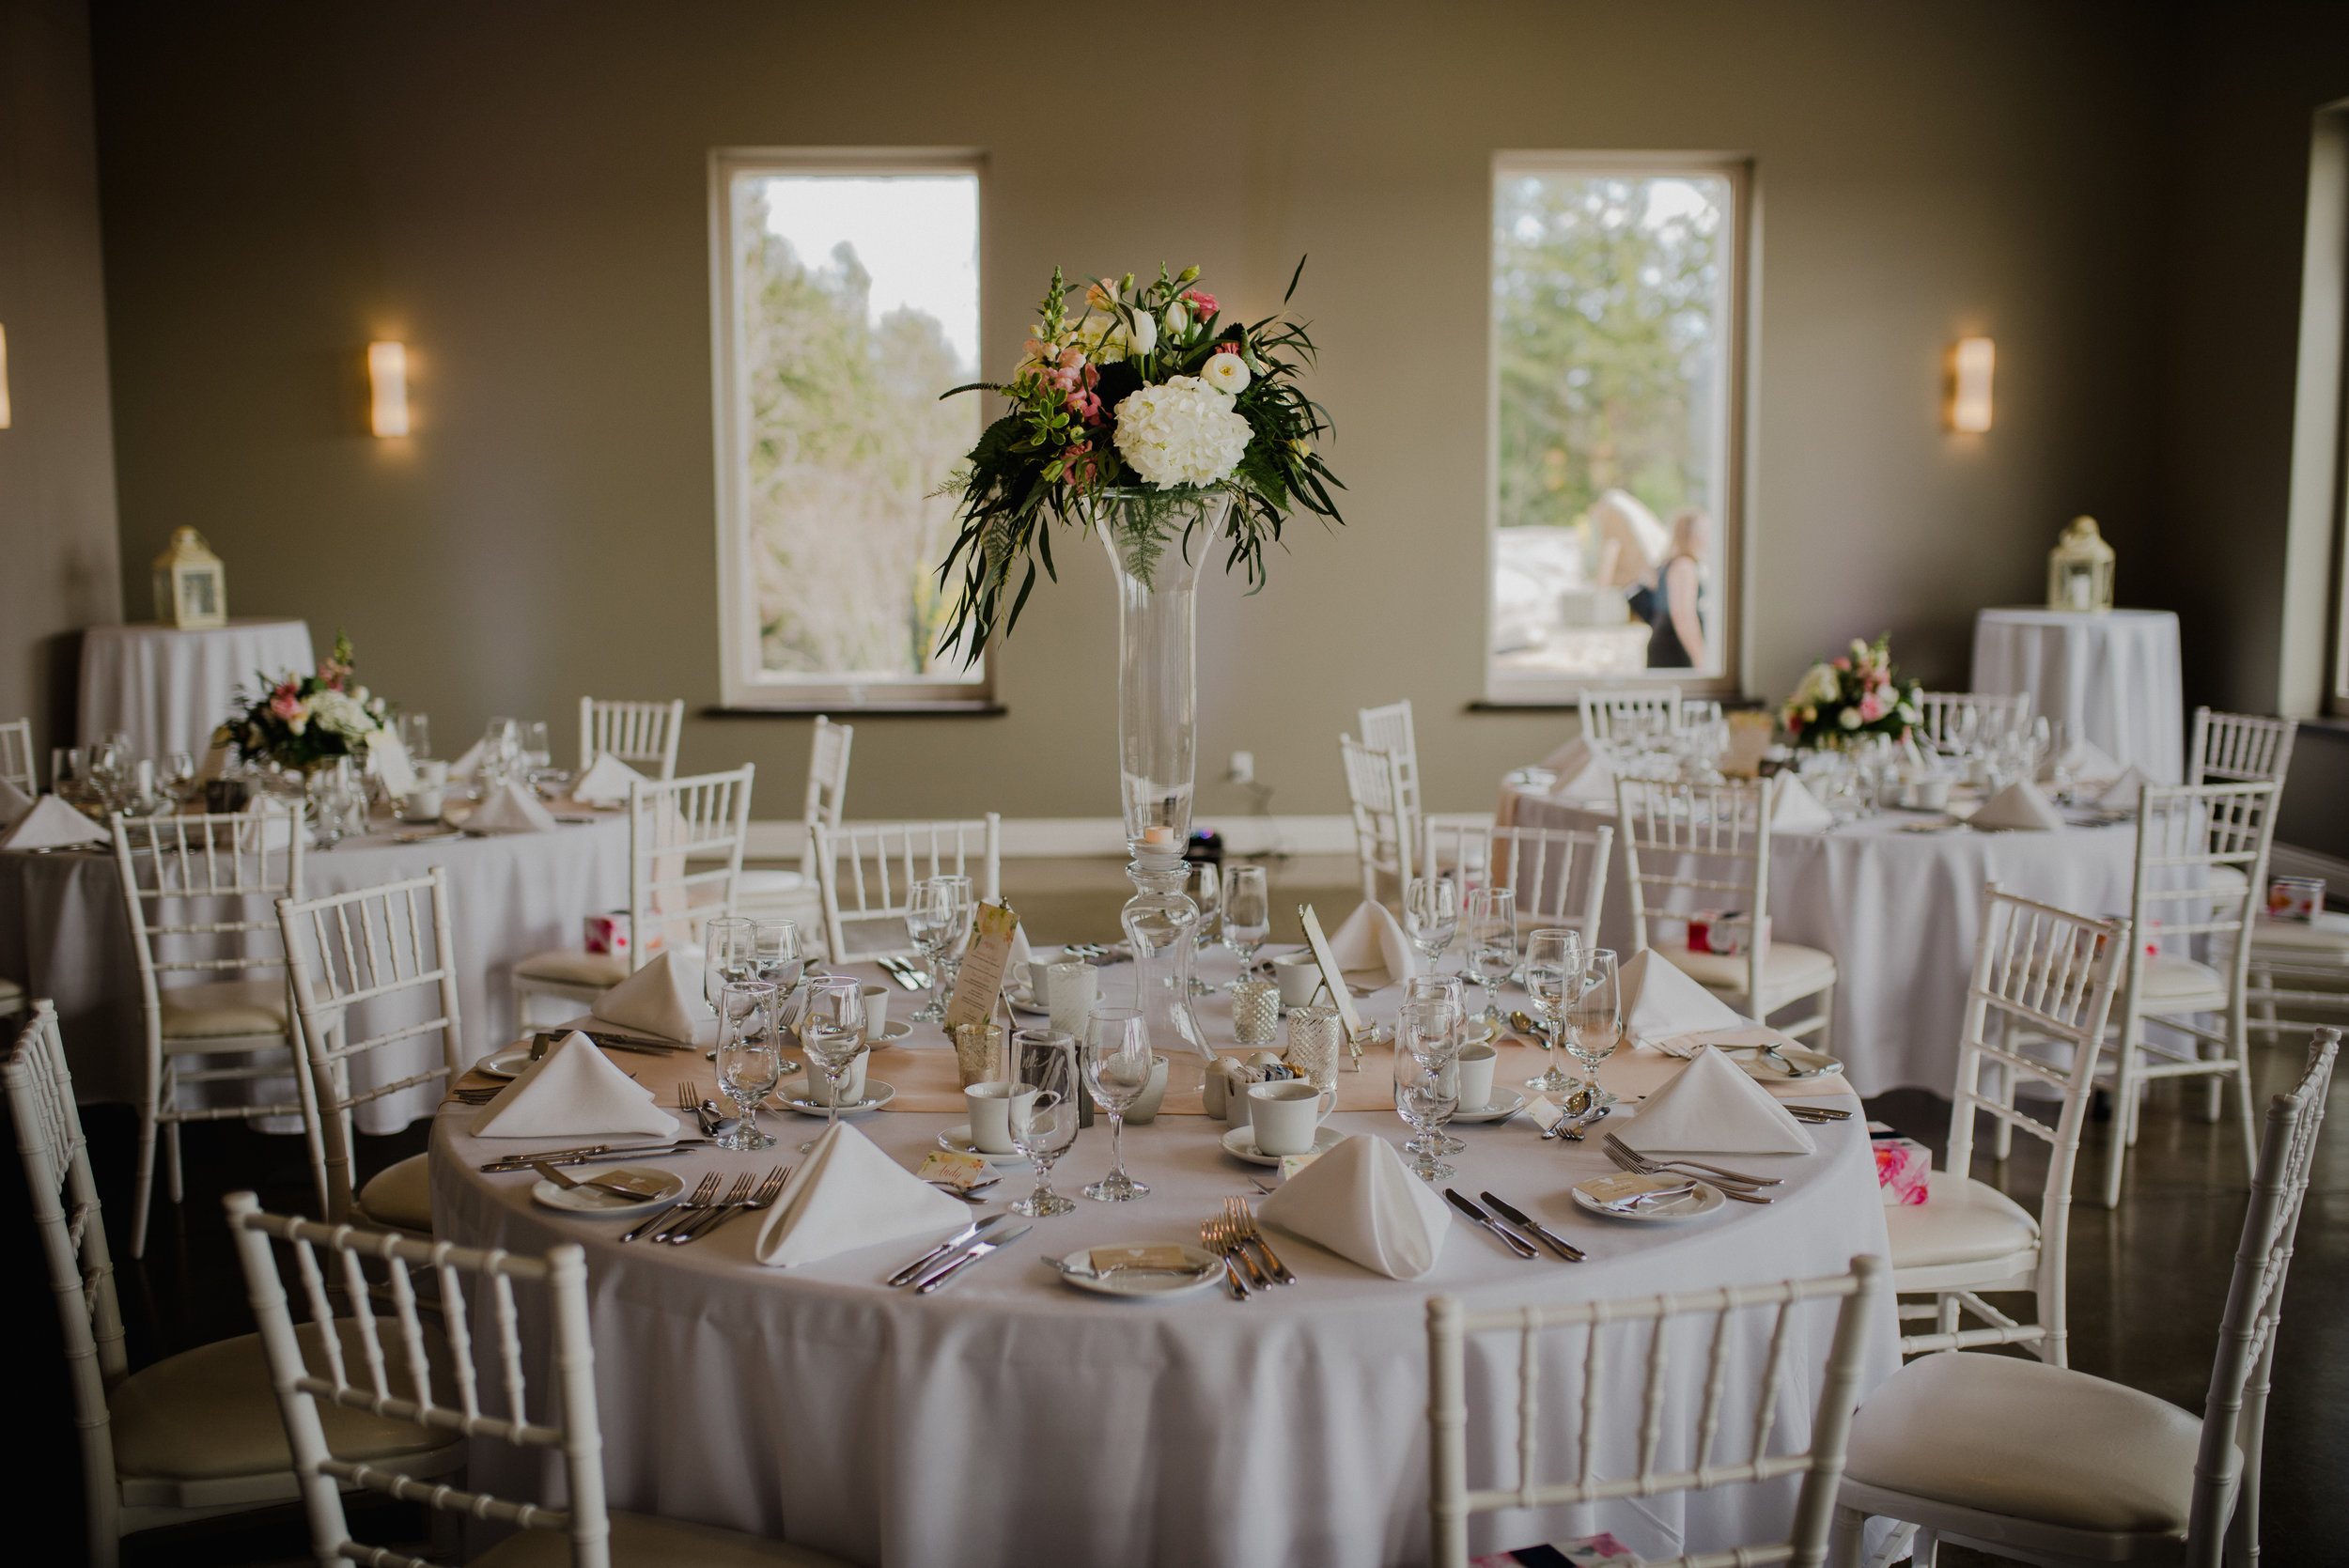 Mocha Tree Studios Ottawa Wedding and Engagement Photographer and Videographer Dark Moody Intimate Authentic Modern Romantic Cinematic Best Candid 5 THINGS YOU SHOULDN'T WORRY ABOUT ON YOUR WEDDING DAY. AND WHAT CAN HELP YOU AVOID THEM 6